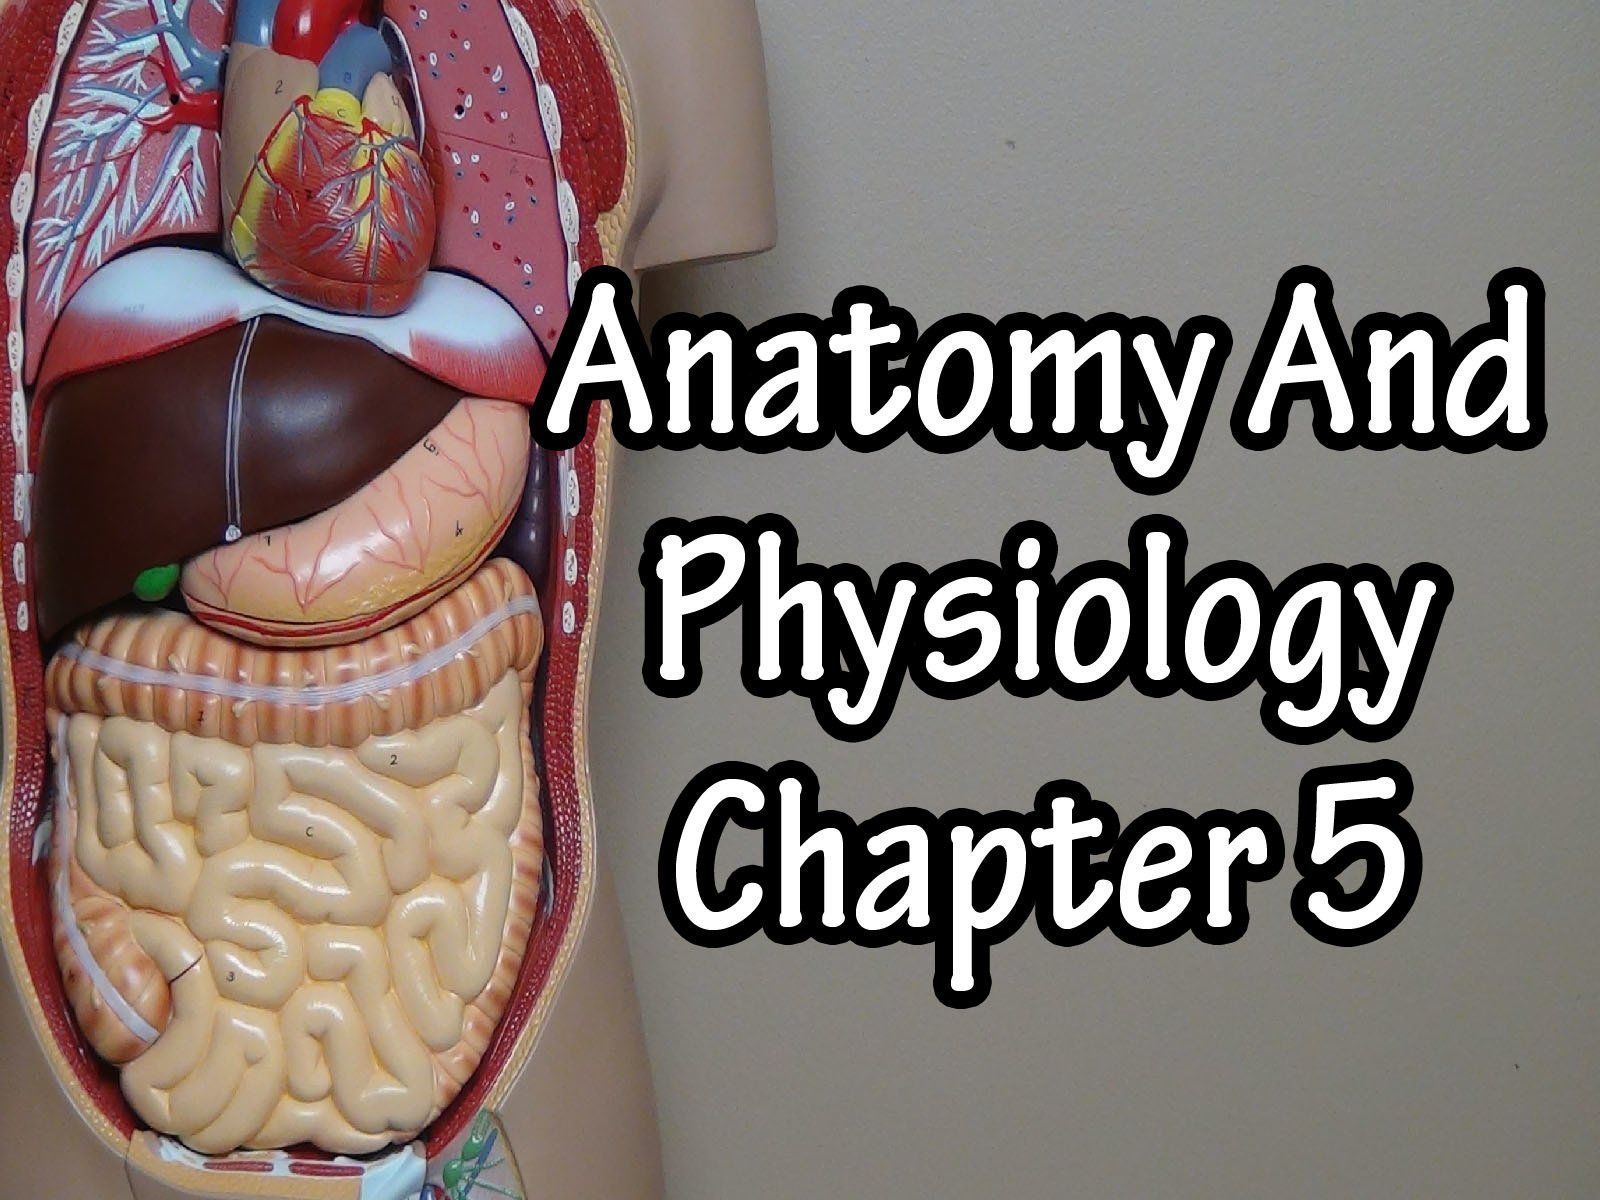 Anatomy And Physiology Chapter 5 - Season 1